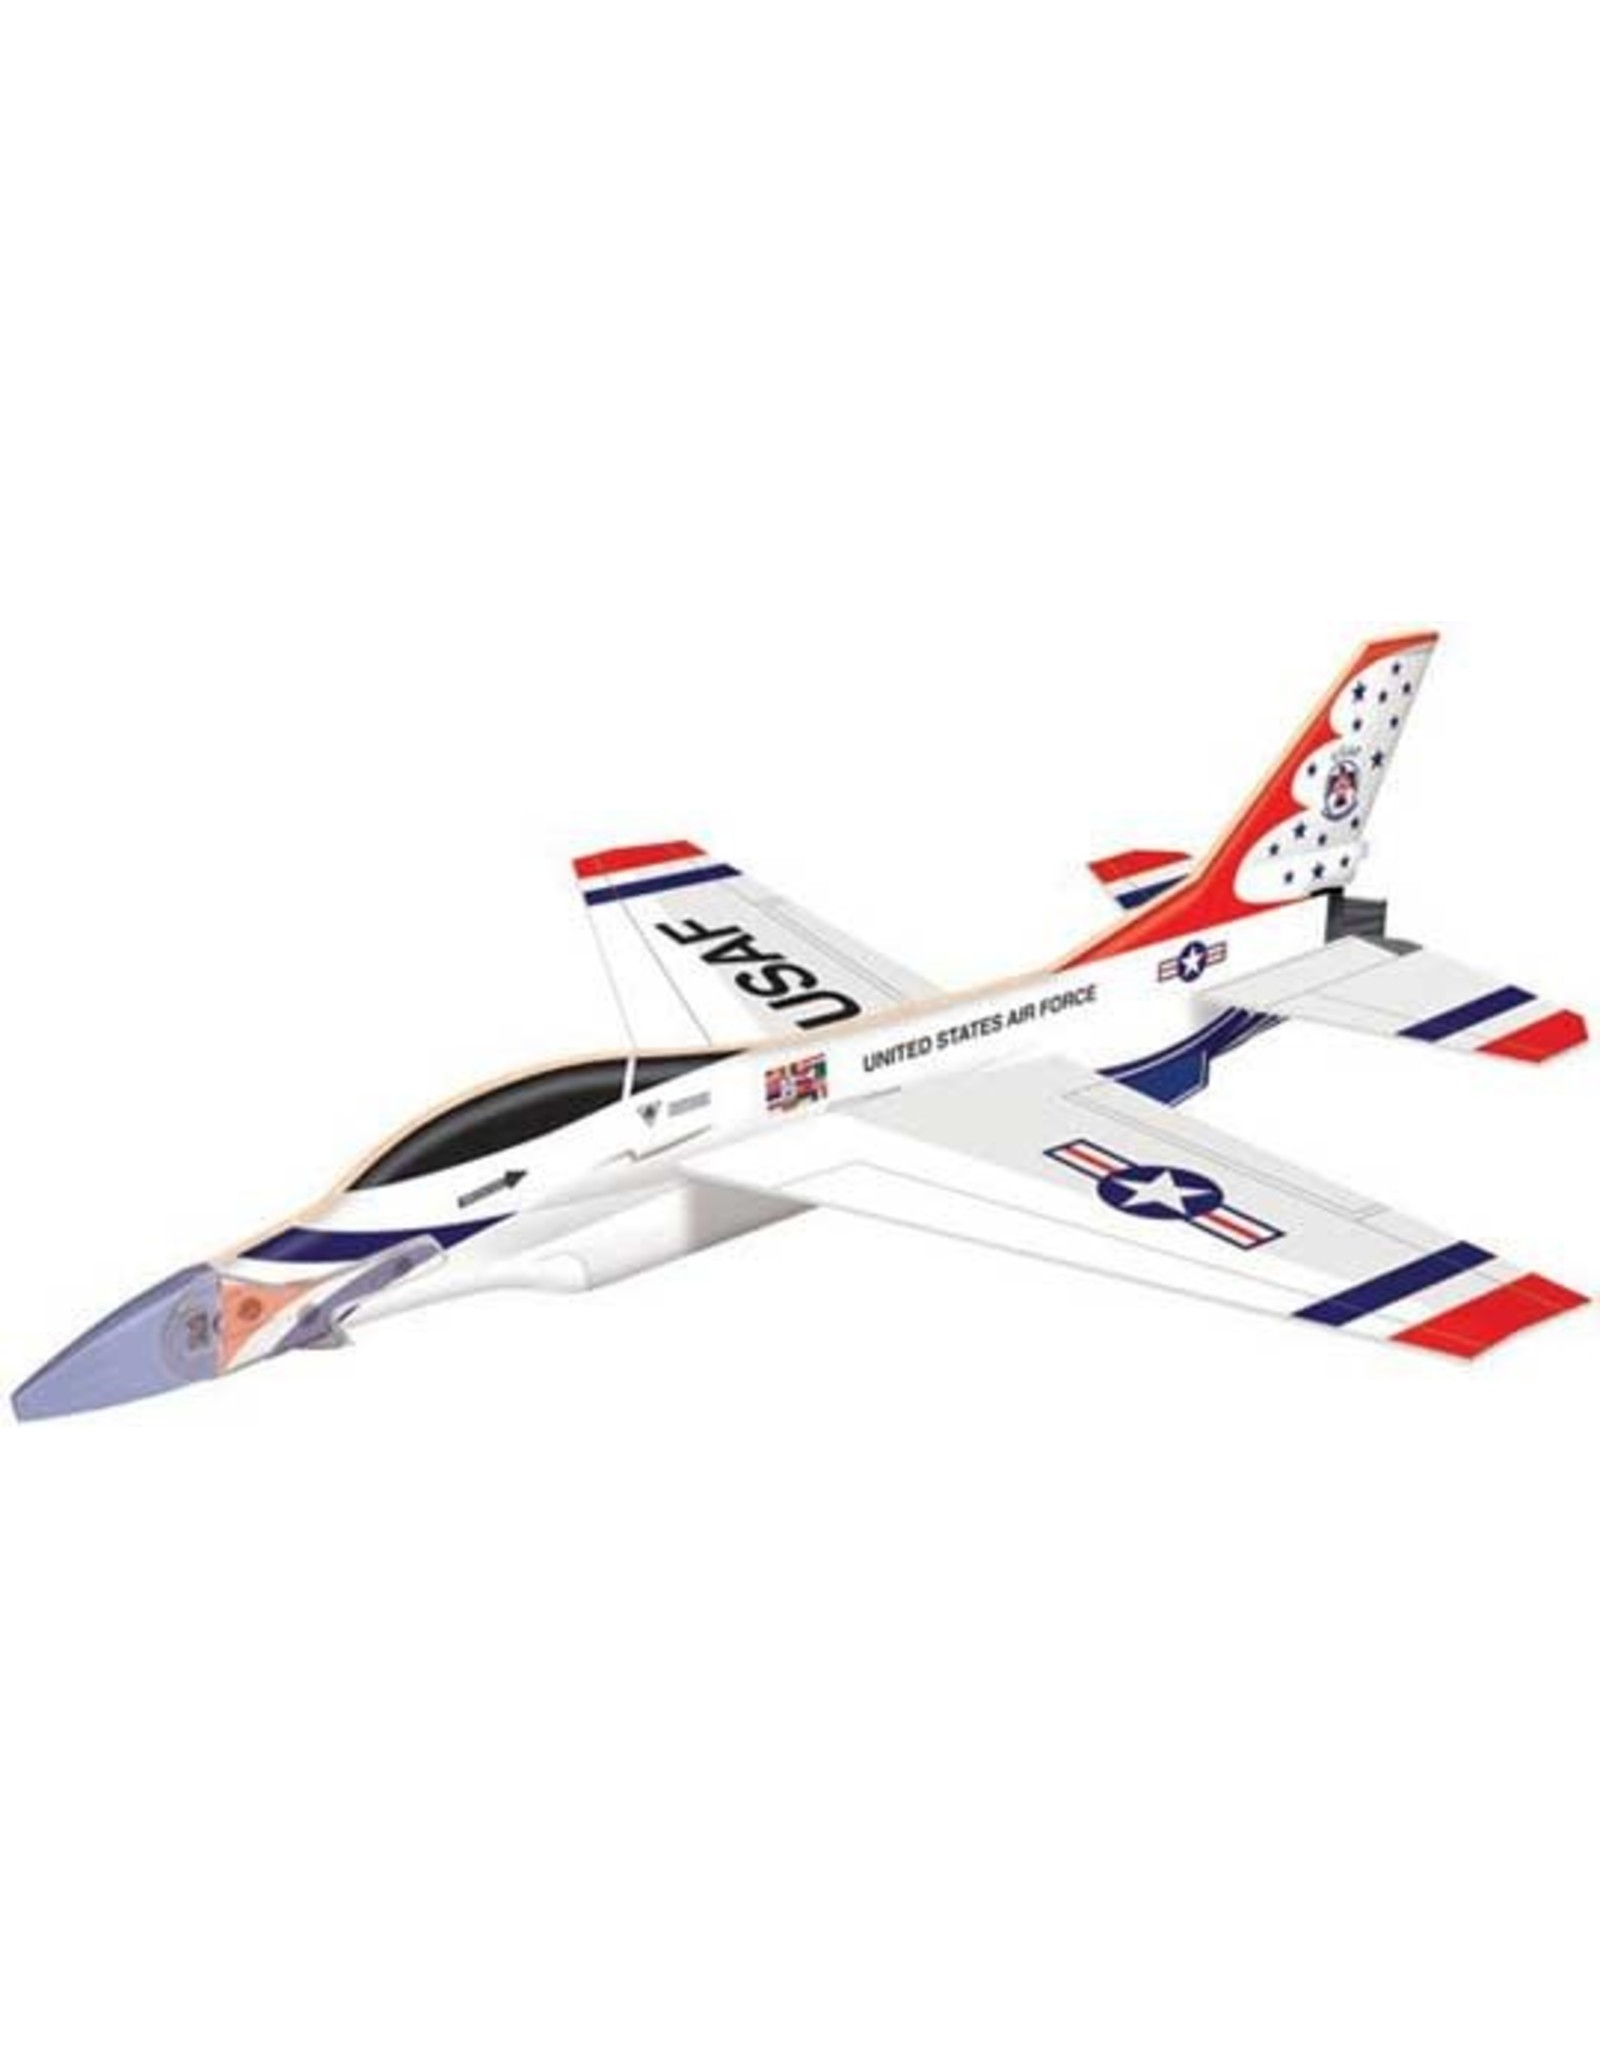 Smithsonian F-16 Fighting Falcon Thunderbirds Glider 11 1/2 ""